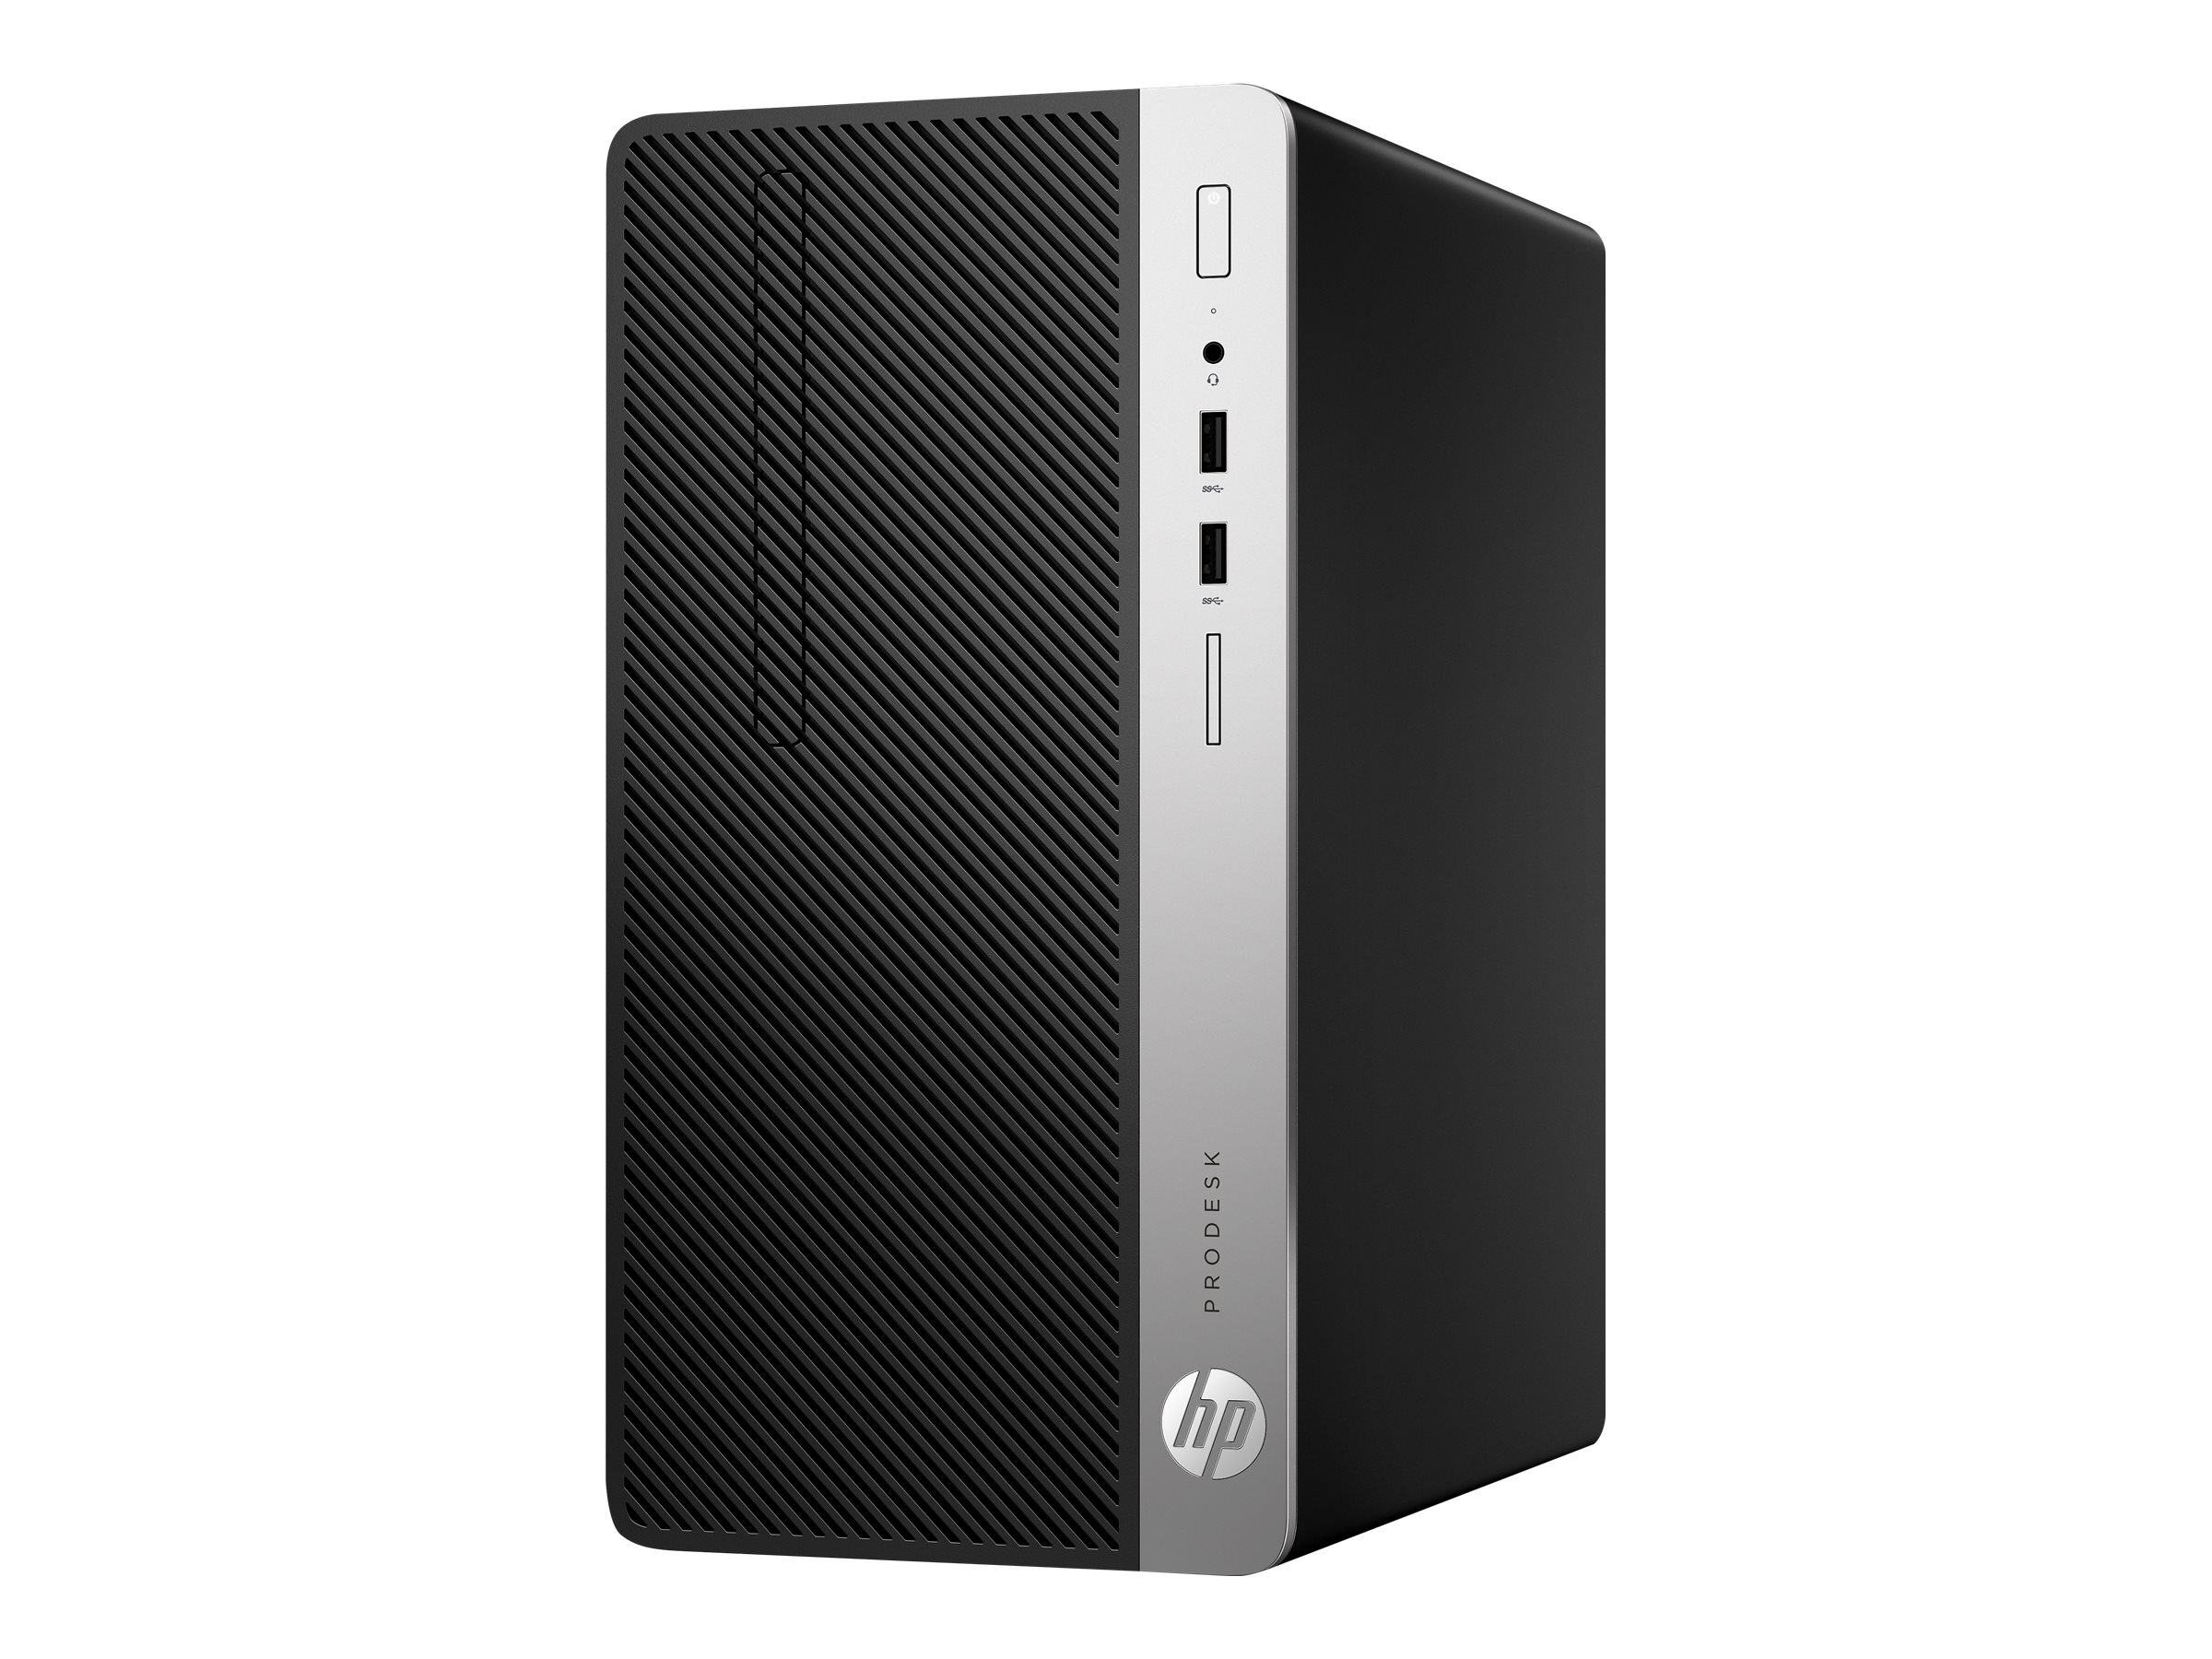 HP ProDesk 400 G4 - Micro Tower - 1 x Core i7 7700 / 3.6 GHz - RAM 8 GB - HDD 1 TB - DVD-Writer - GF GT 730 - GigE - Win 10 Pro